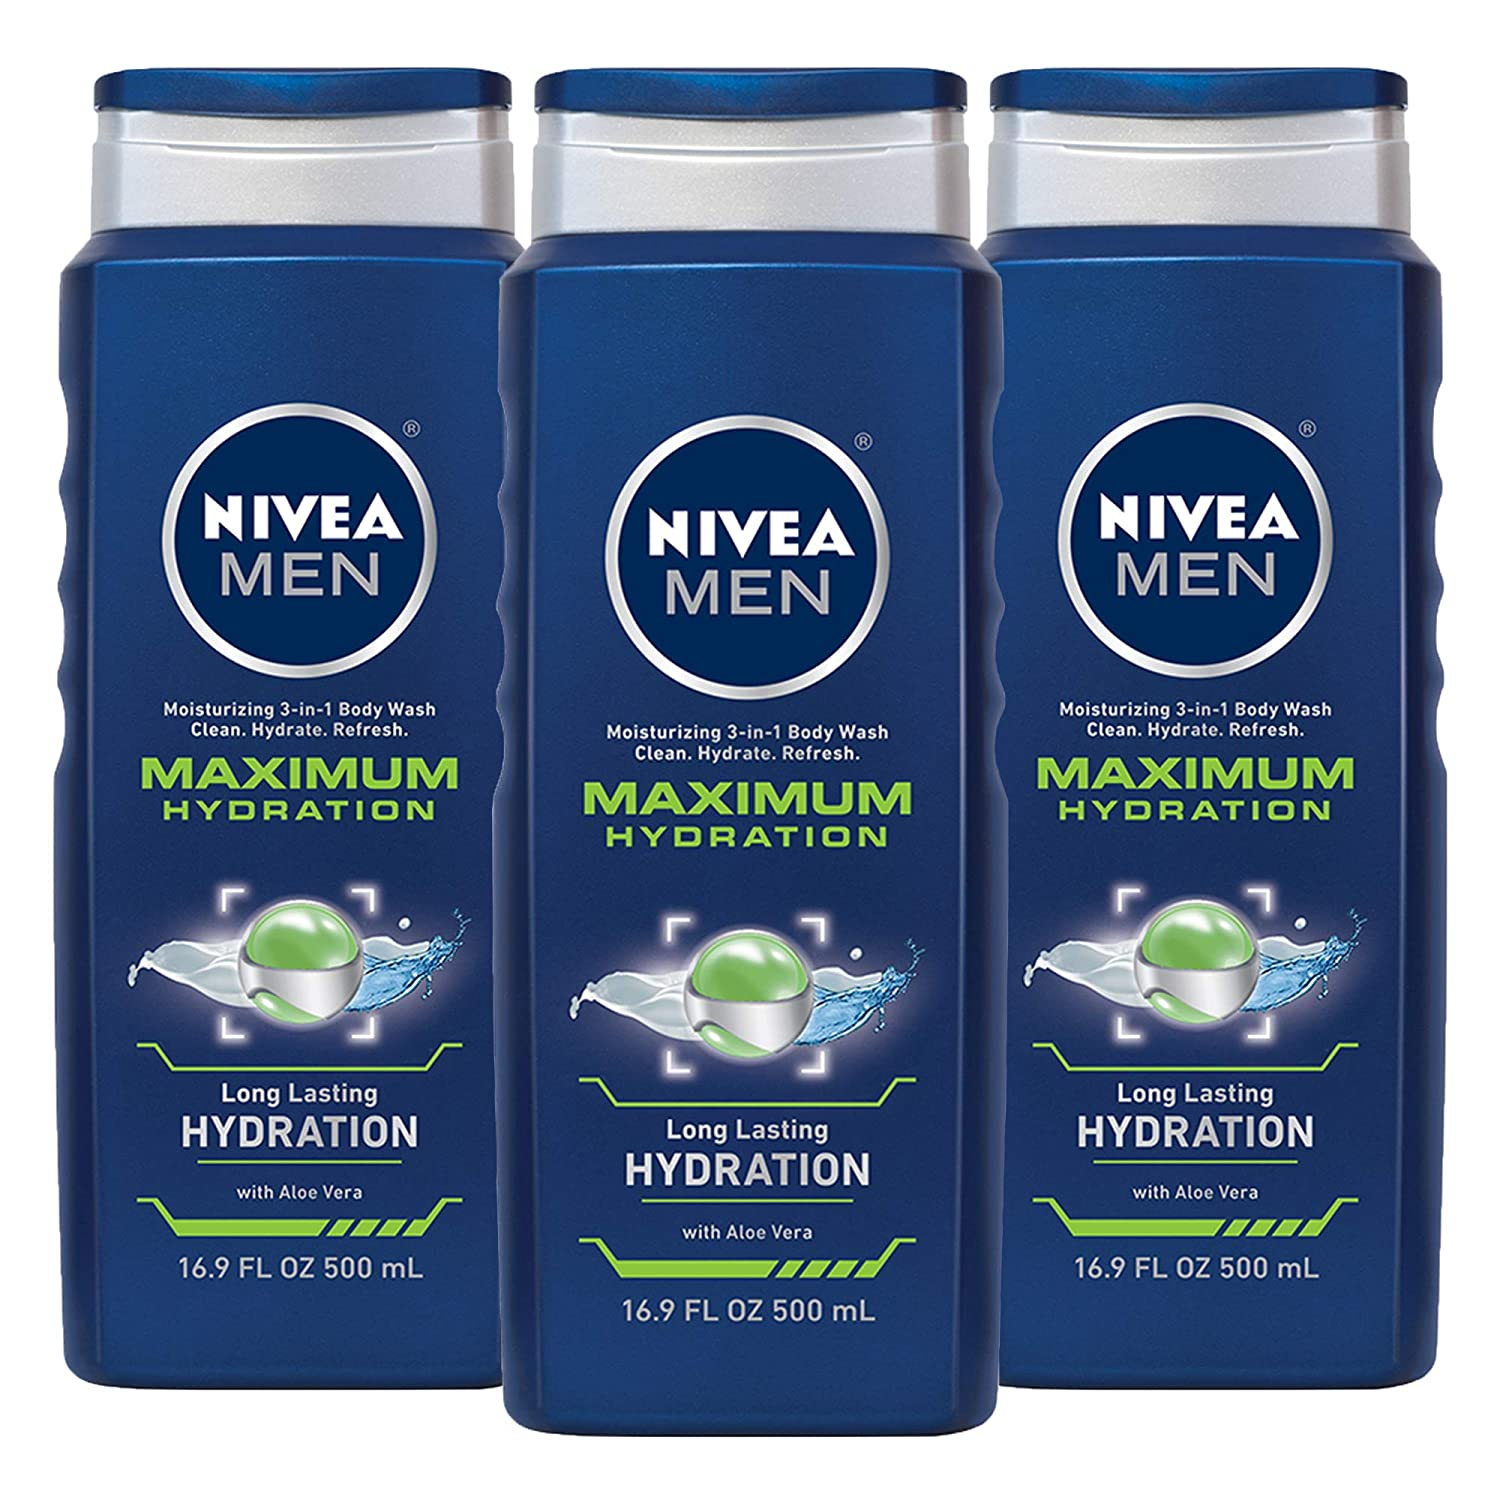 NIVEA MEN Maximum Hydration 3-in-1 Body Wash with Aloe Vera, 16.9 ...